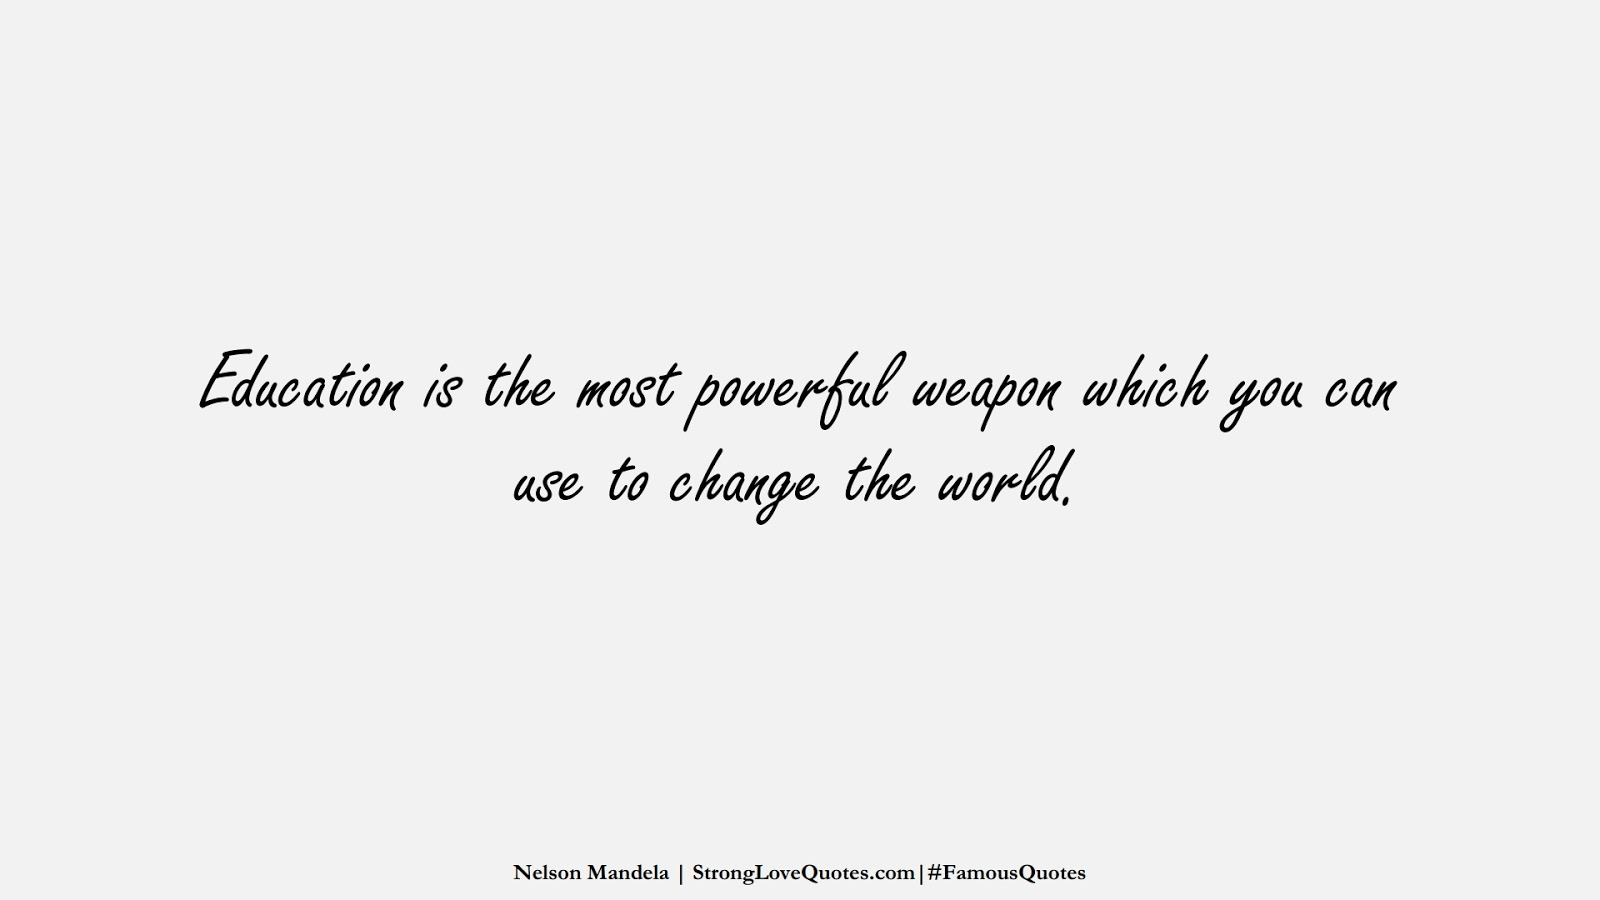 Education is the most powerful weapon which you can use to change the world. (Nelson Mandela);  #FamousQuotes